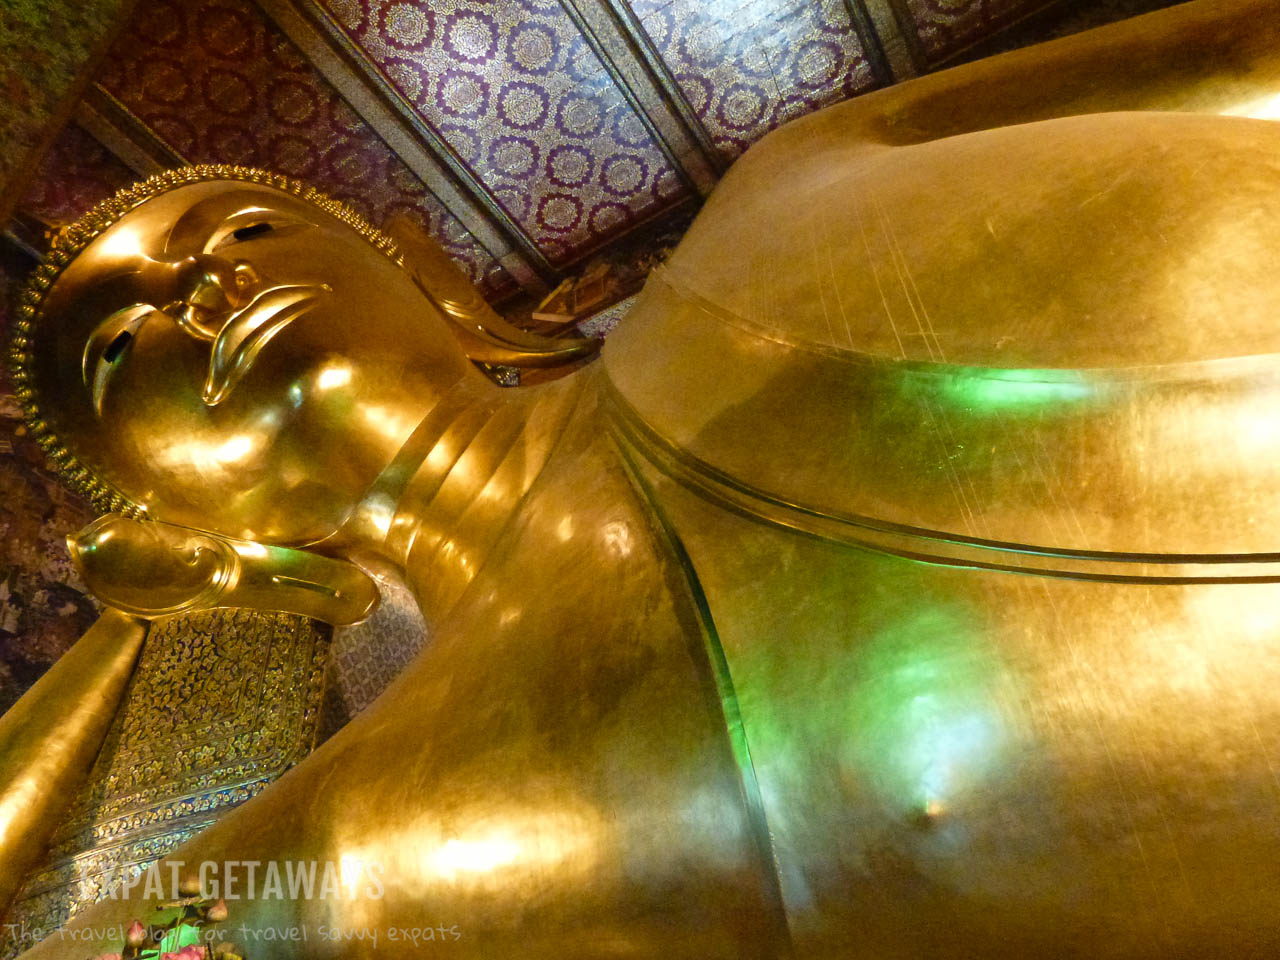 The reclining Buddha is a spectacular sight.